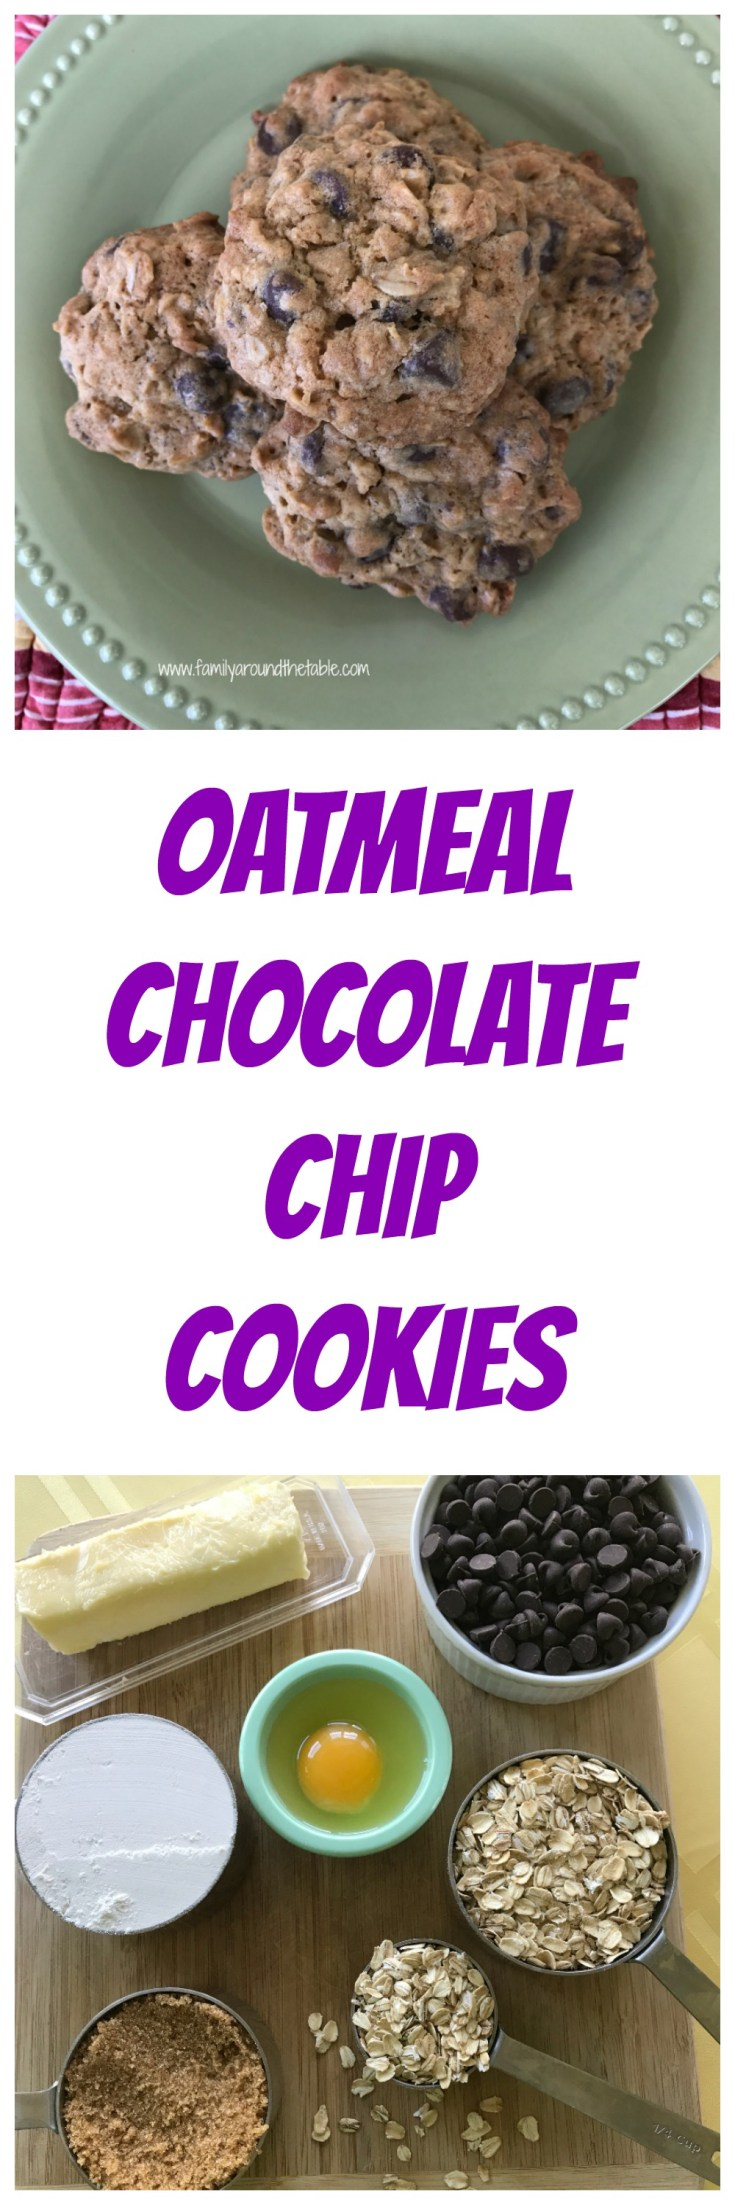 Oatmeal chocolate chops cookies are a special treat.